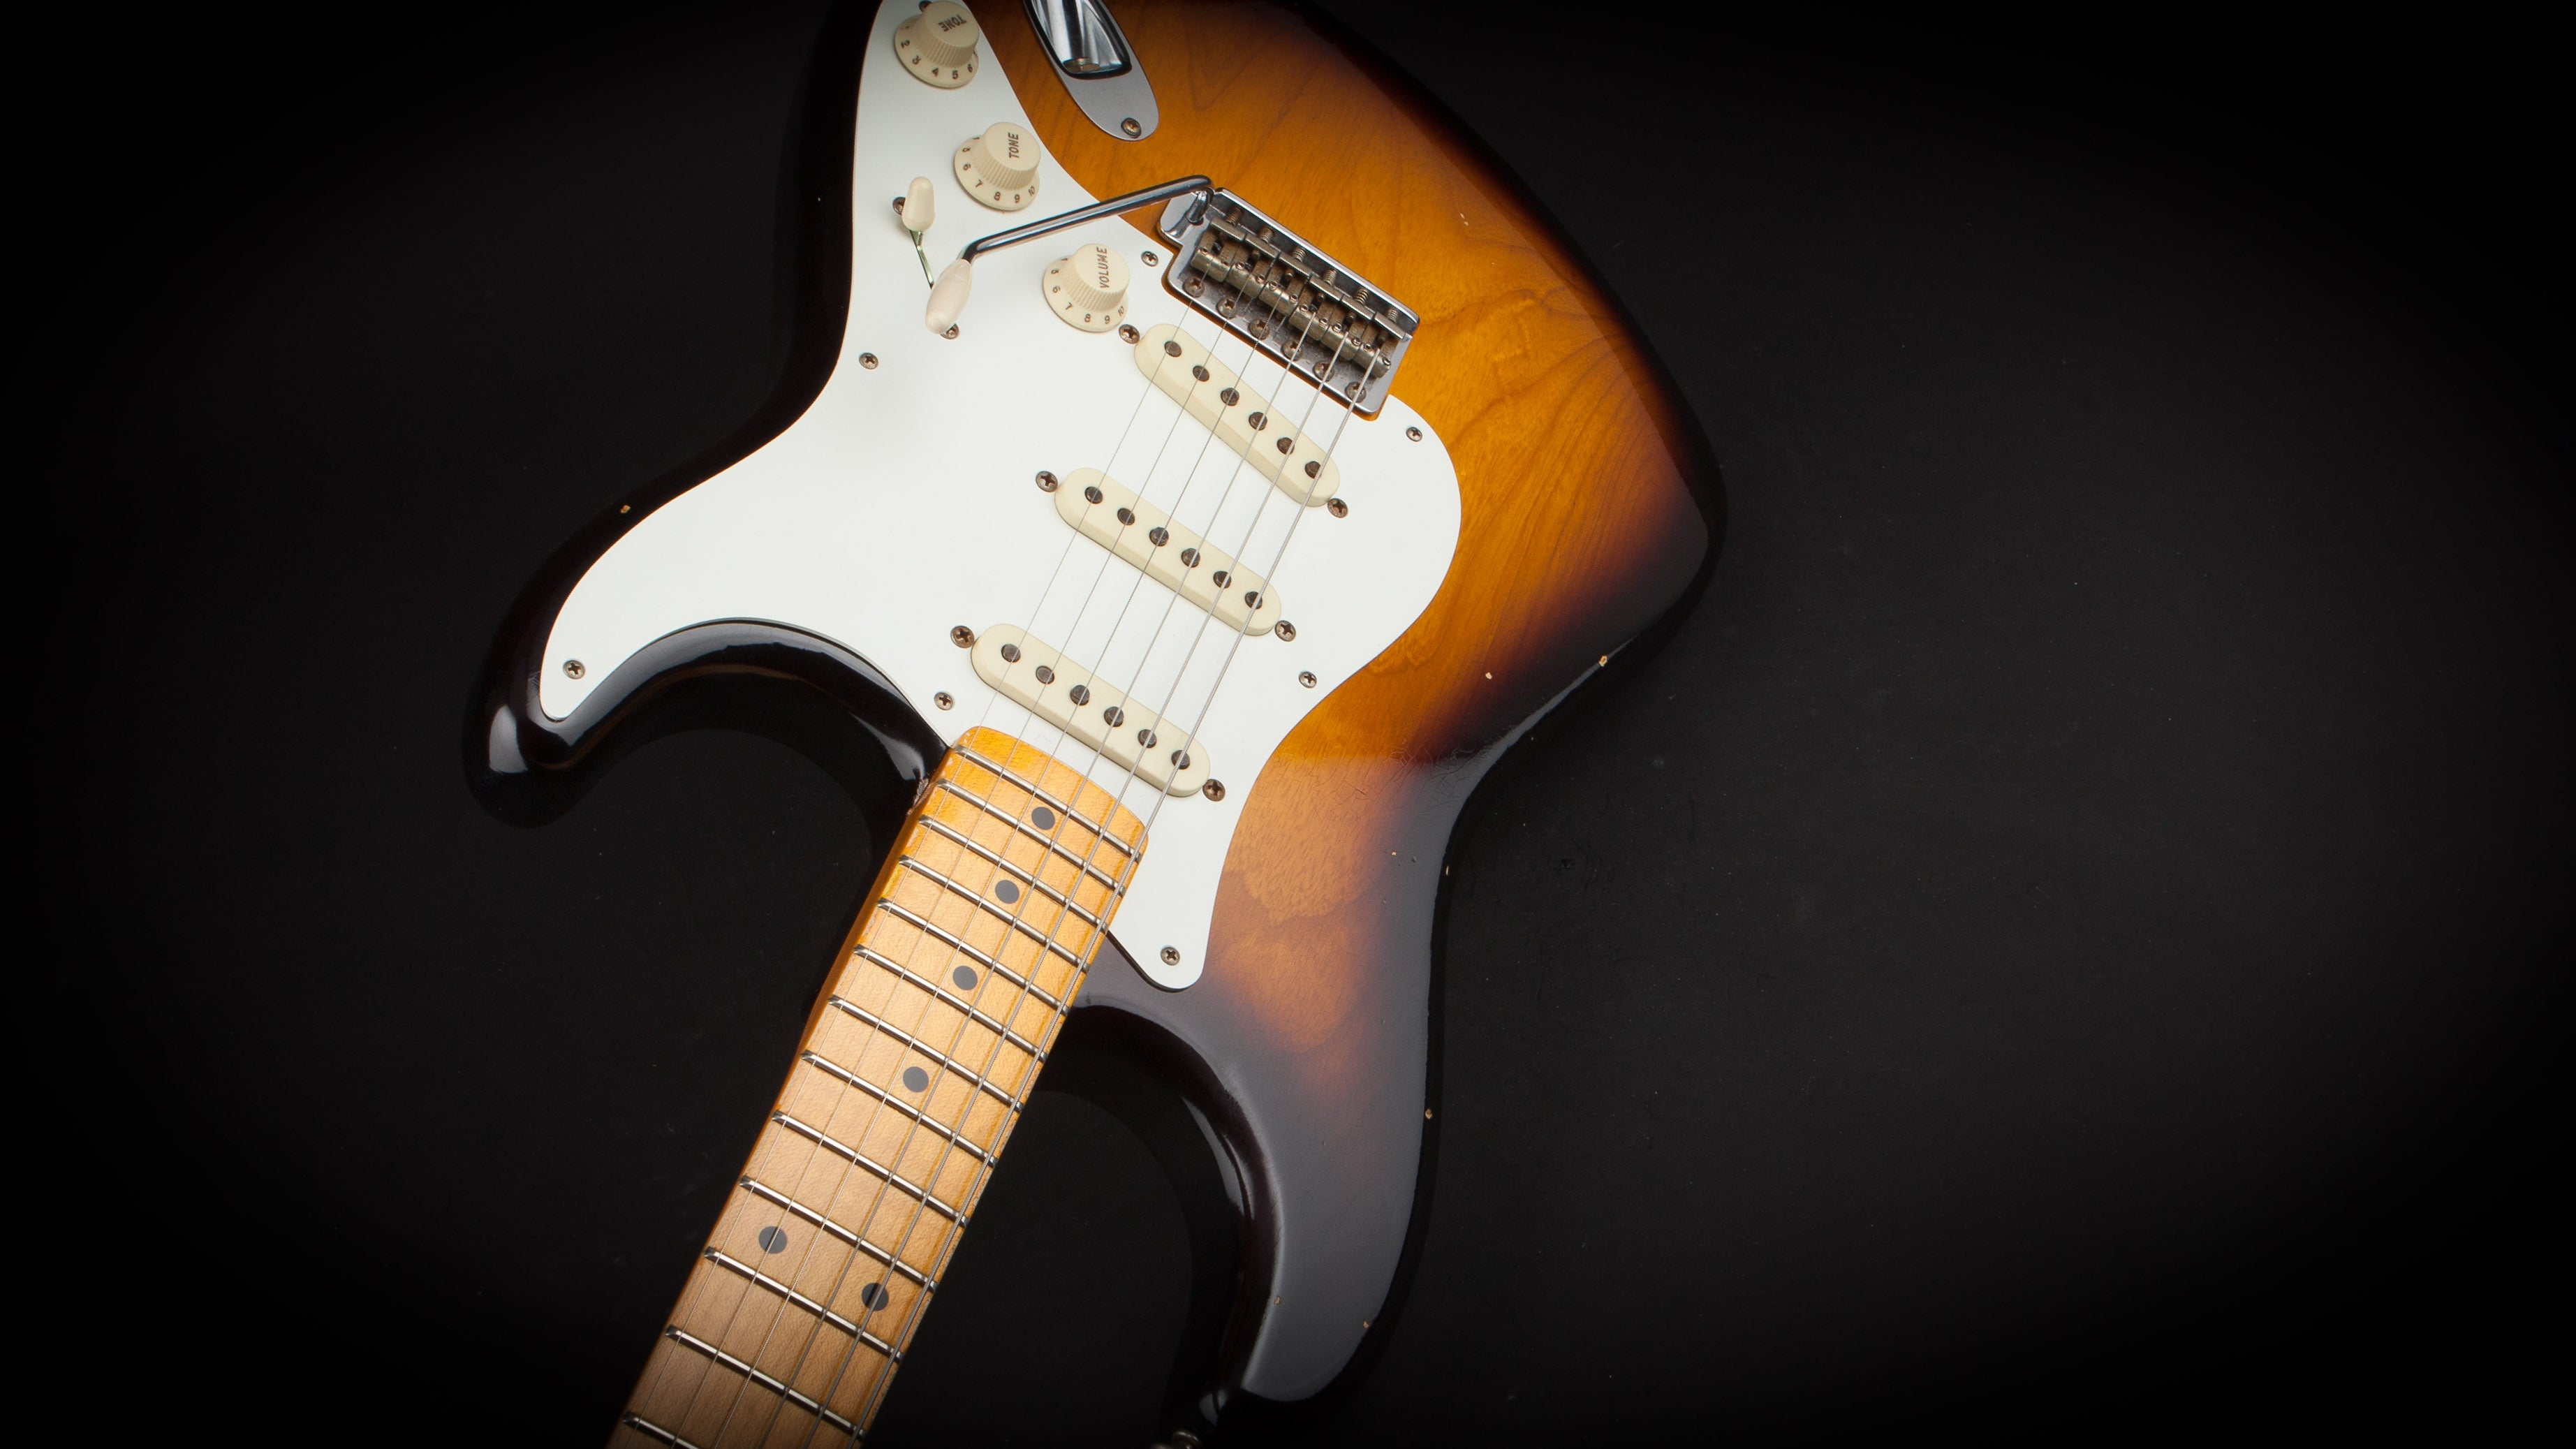 Fender Custom Shop: 58 Stratocaster Journeyman 2 Tone Sunburst #R86901